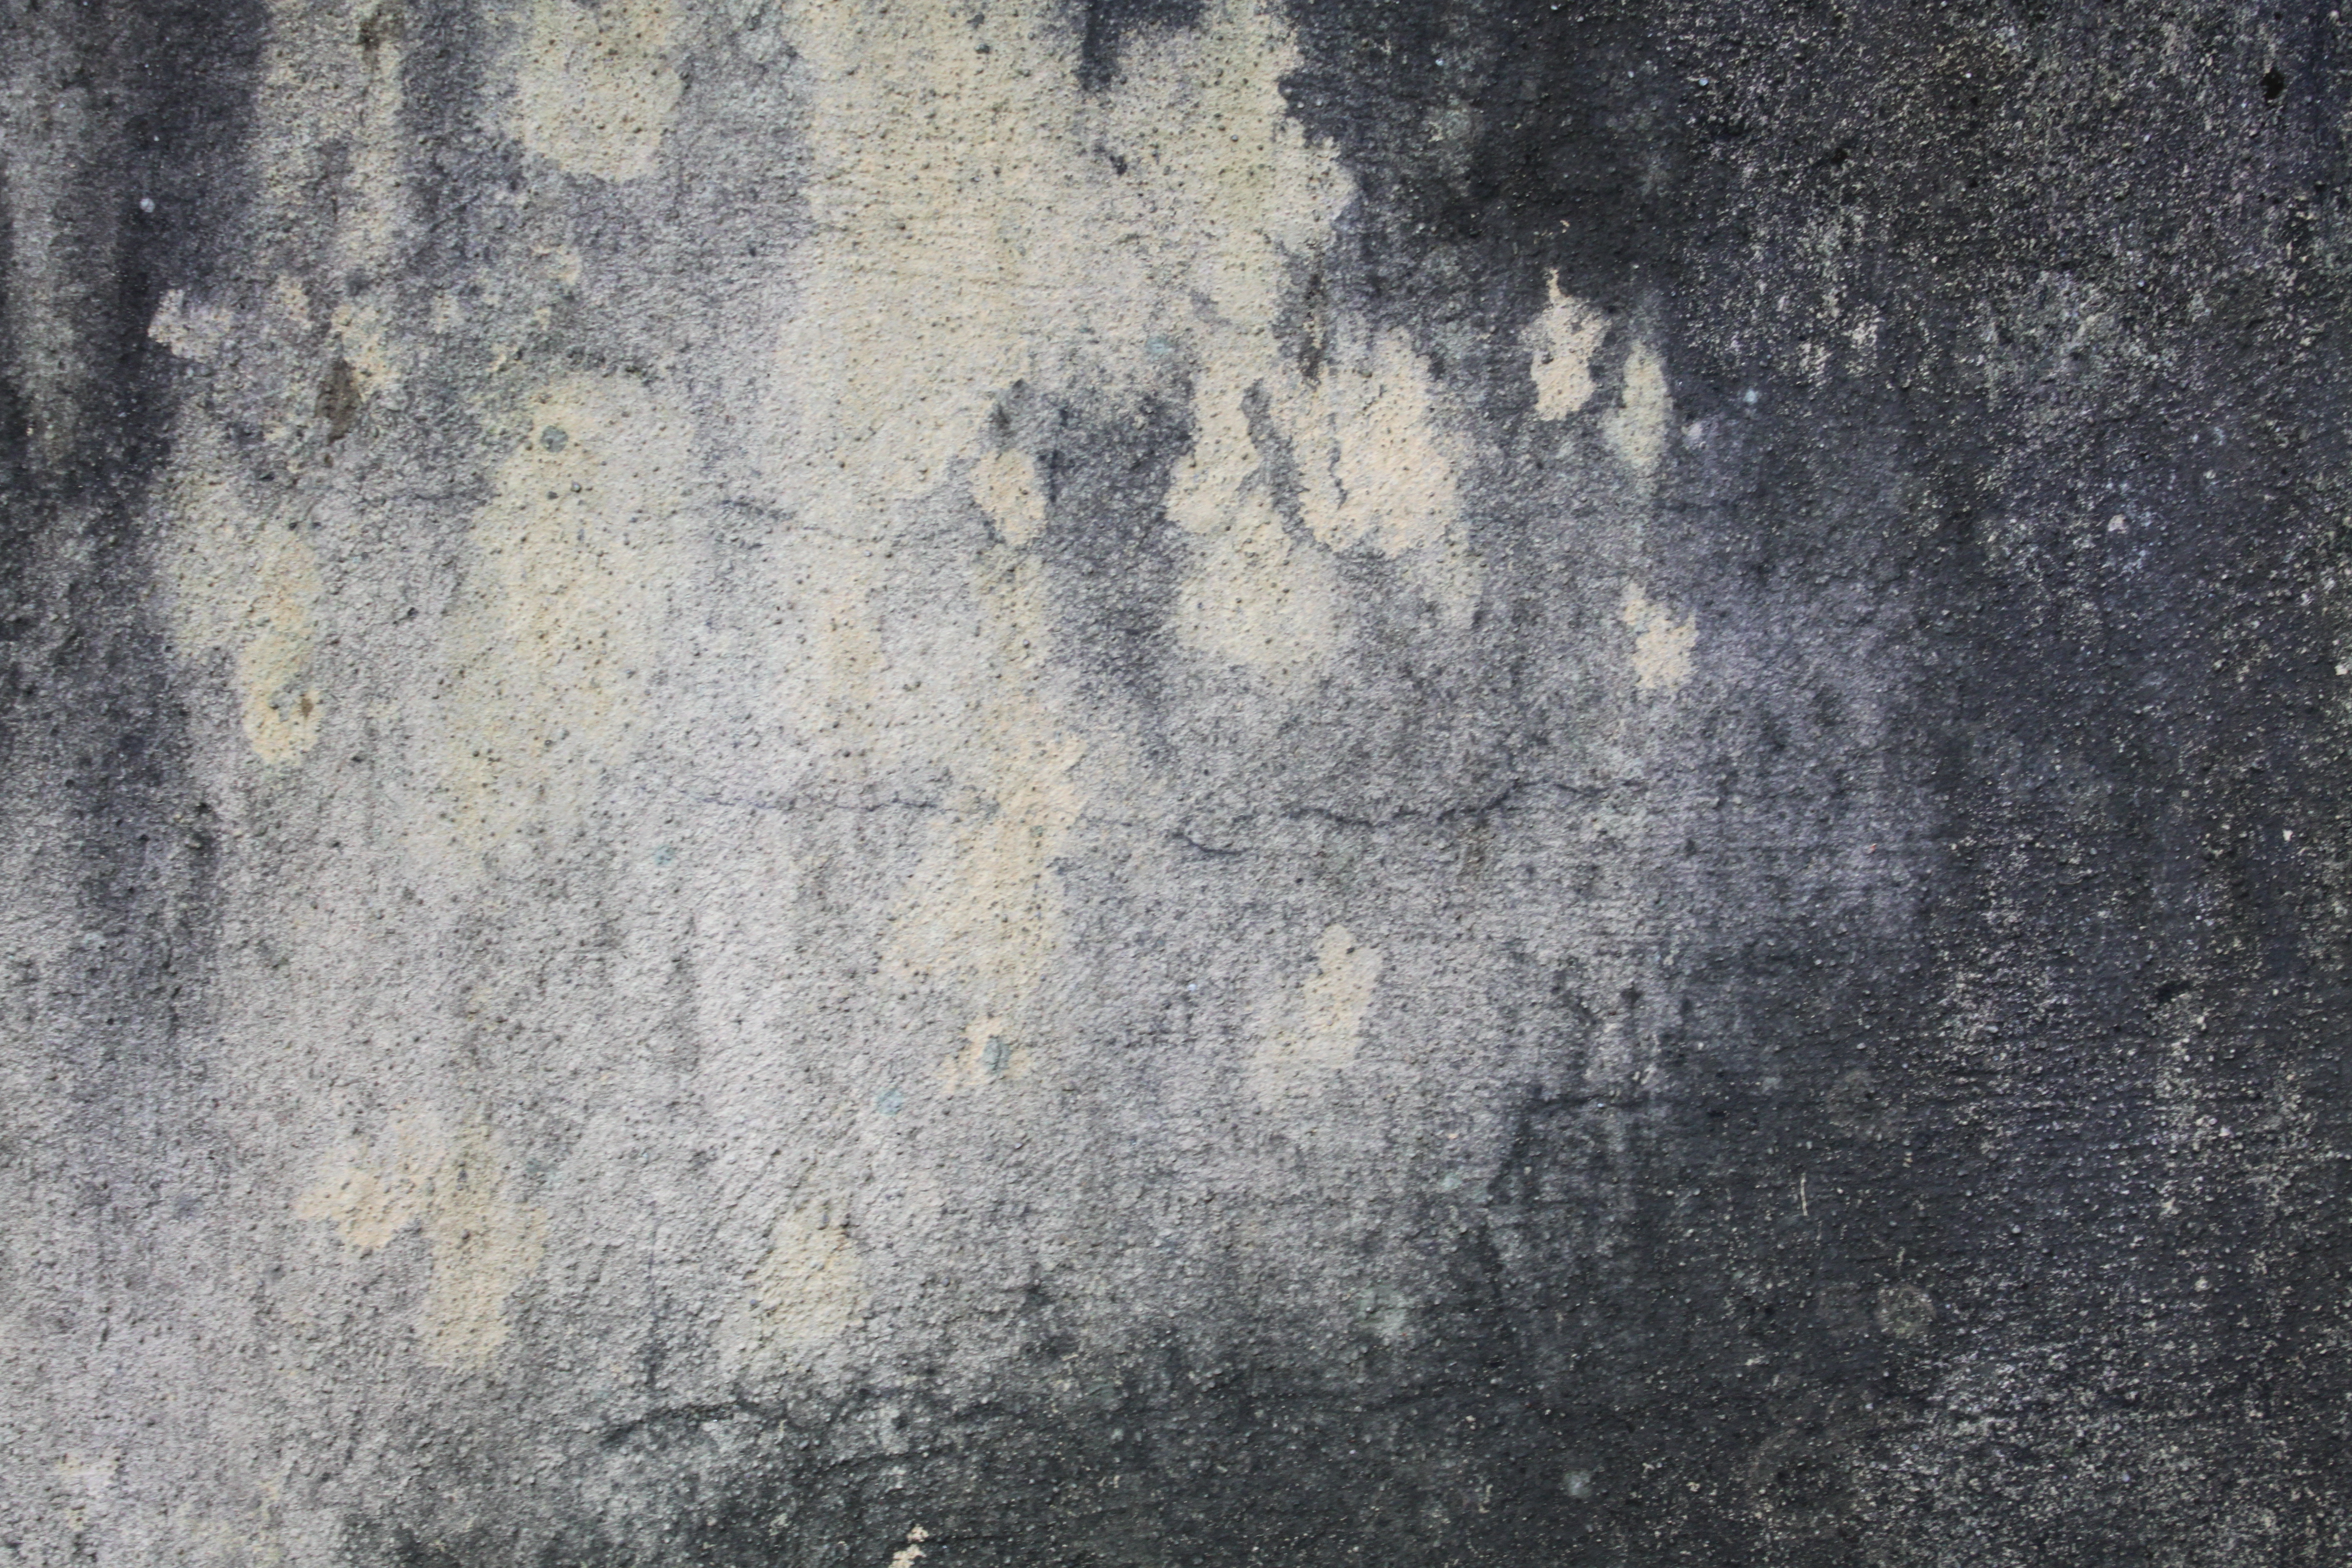 Grunge Backgrounds on Wallpapers Vista